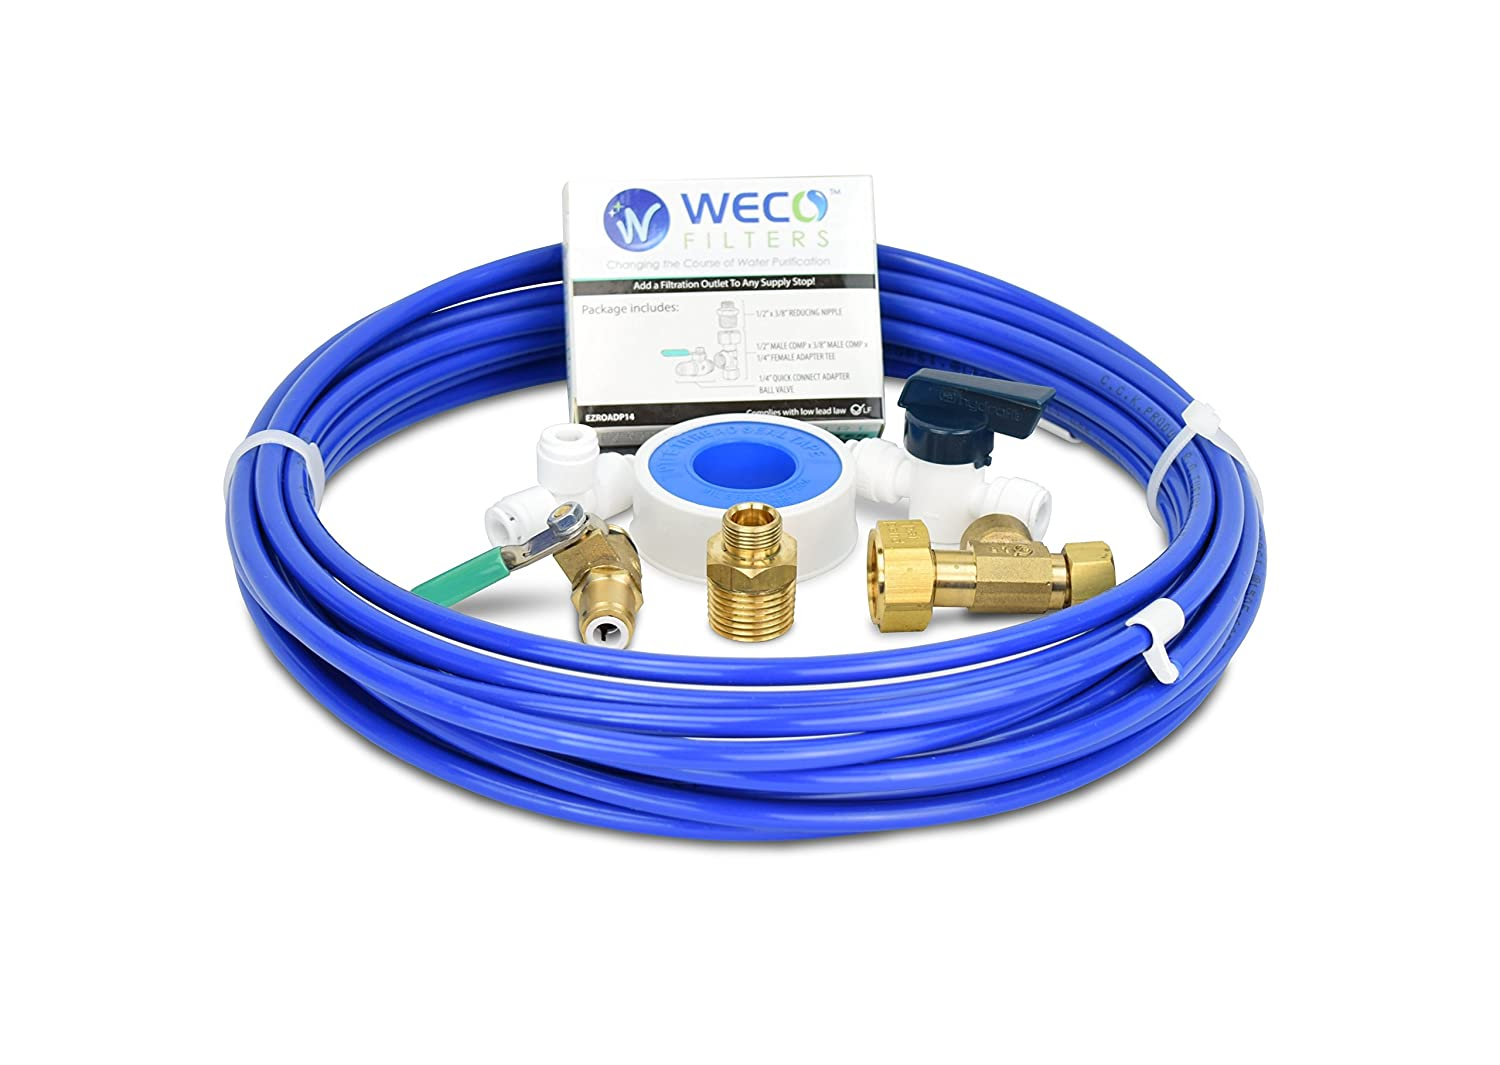 WECO Universal Ice Maker/Humidifier Installation Kit